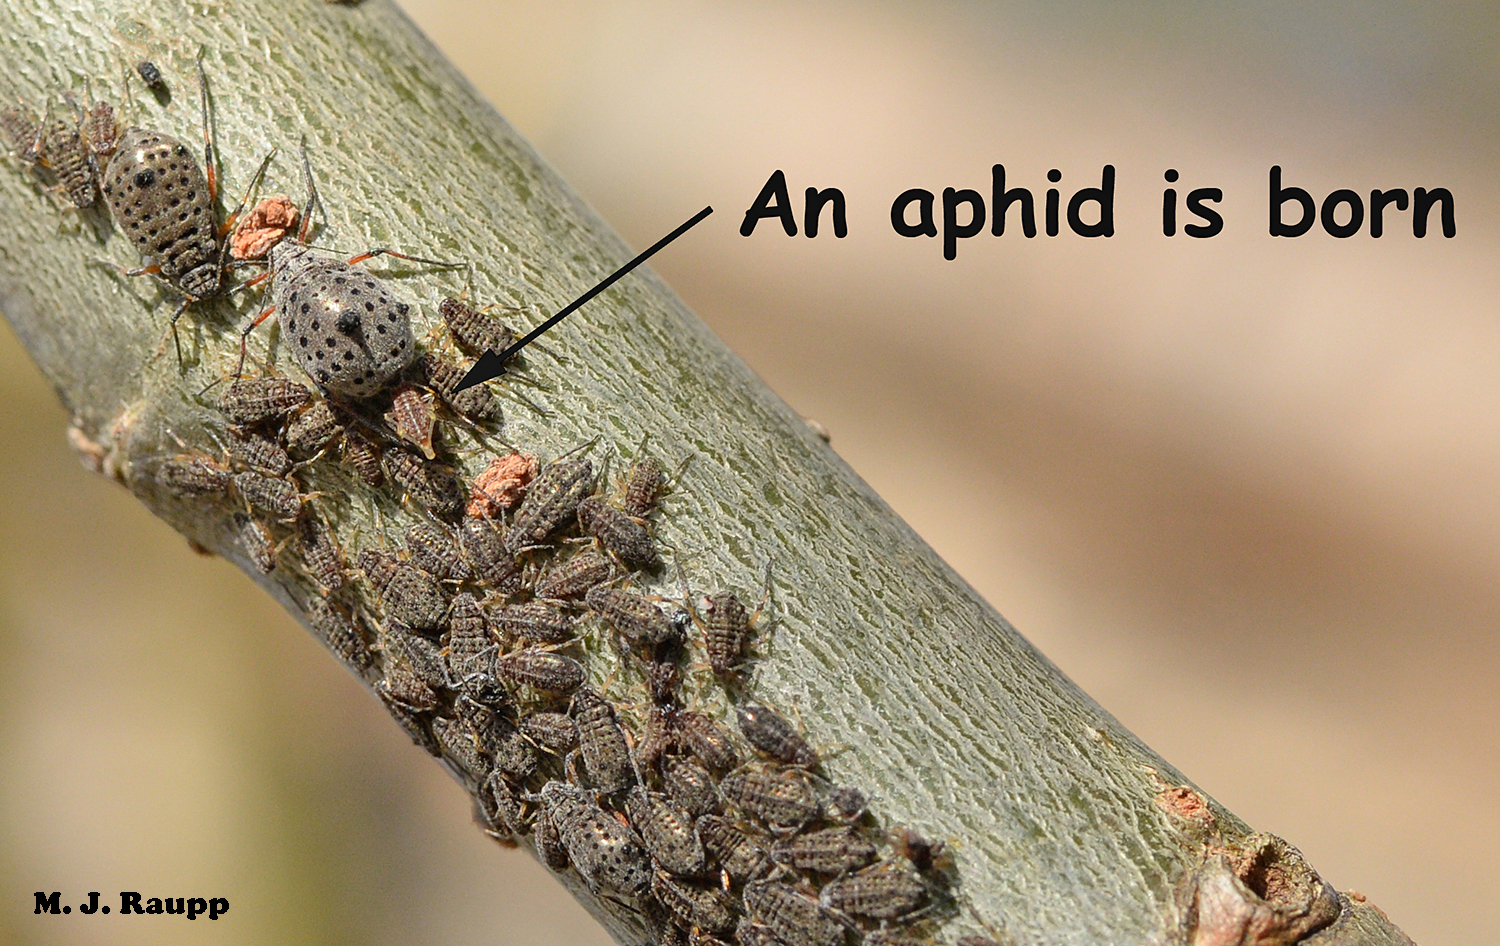 Christmas Tree Aphids.Twas The Week Before Christmas Giant Bark Aphids I